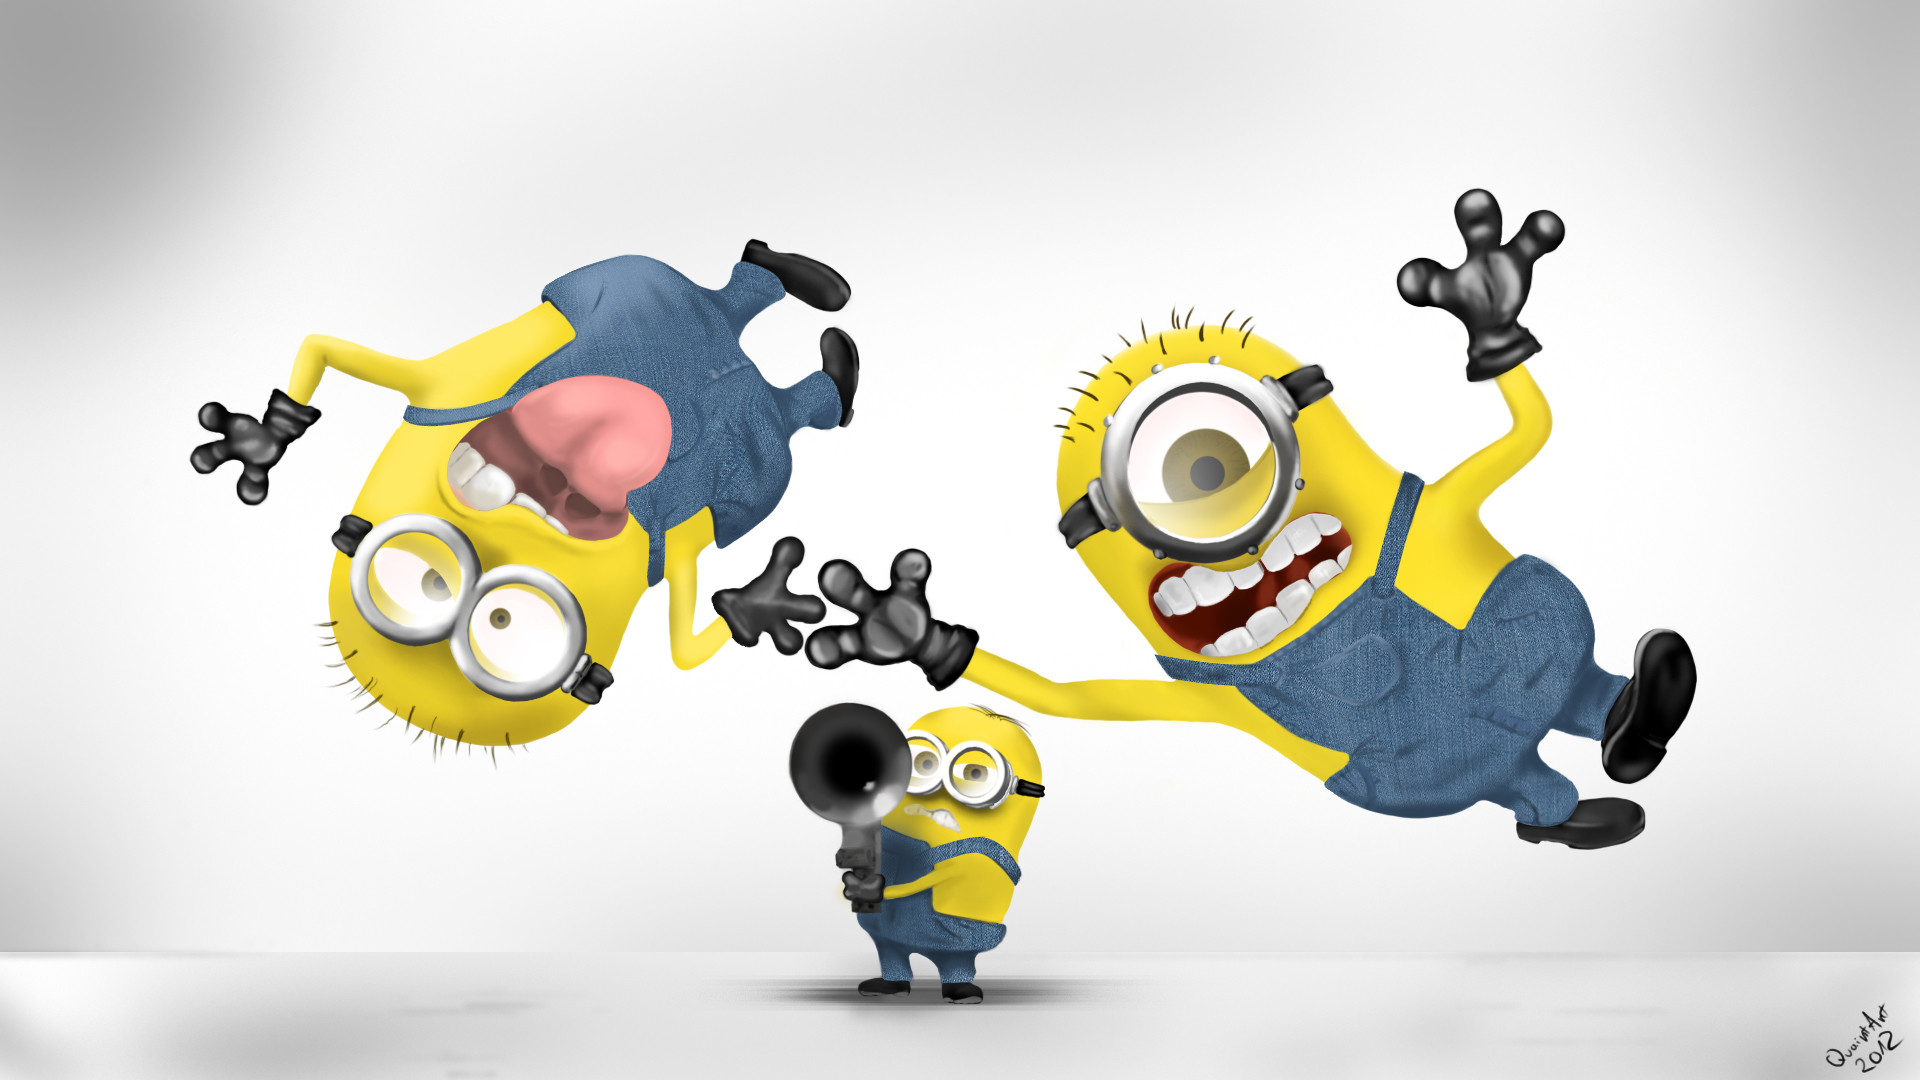 1920x1080 Despicable Me 2 Hd Minions Desktop Wallpapers